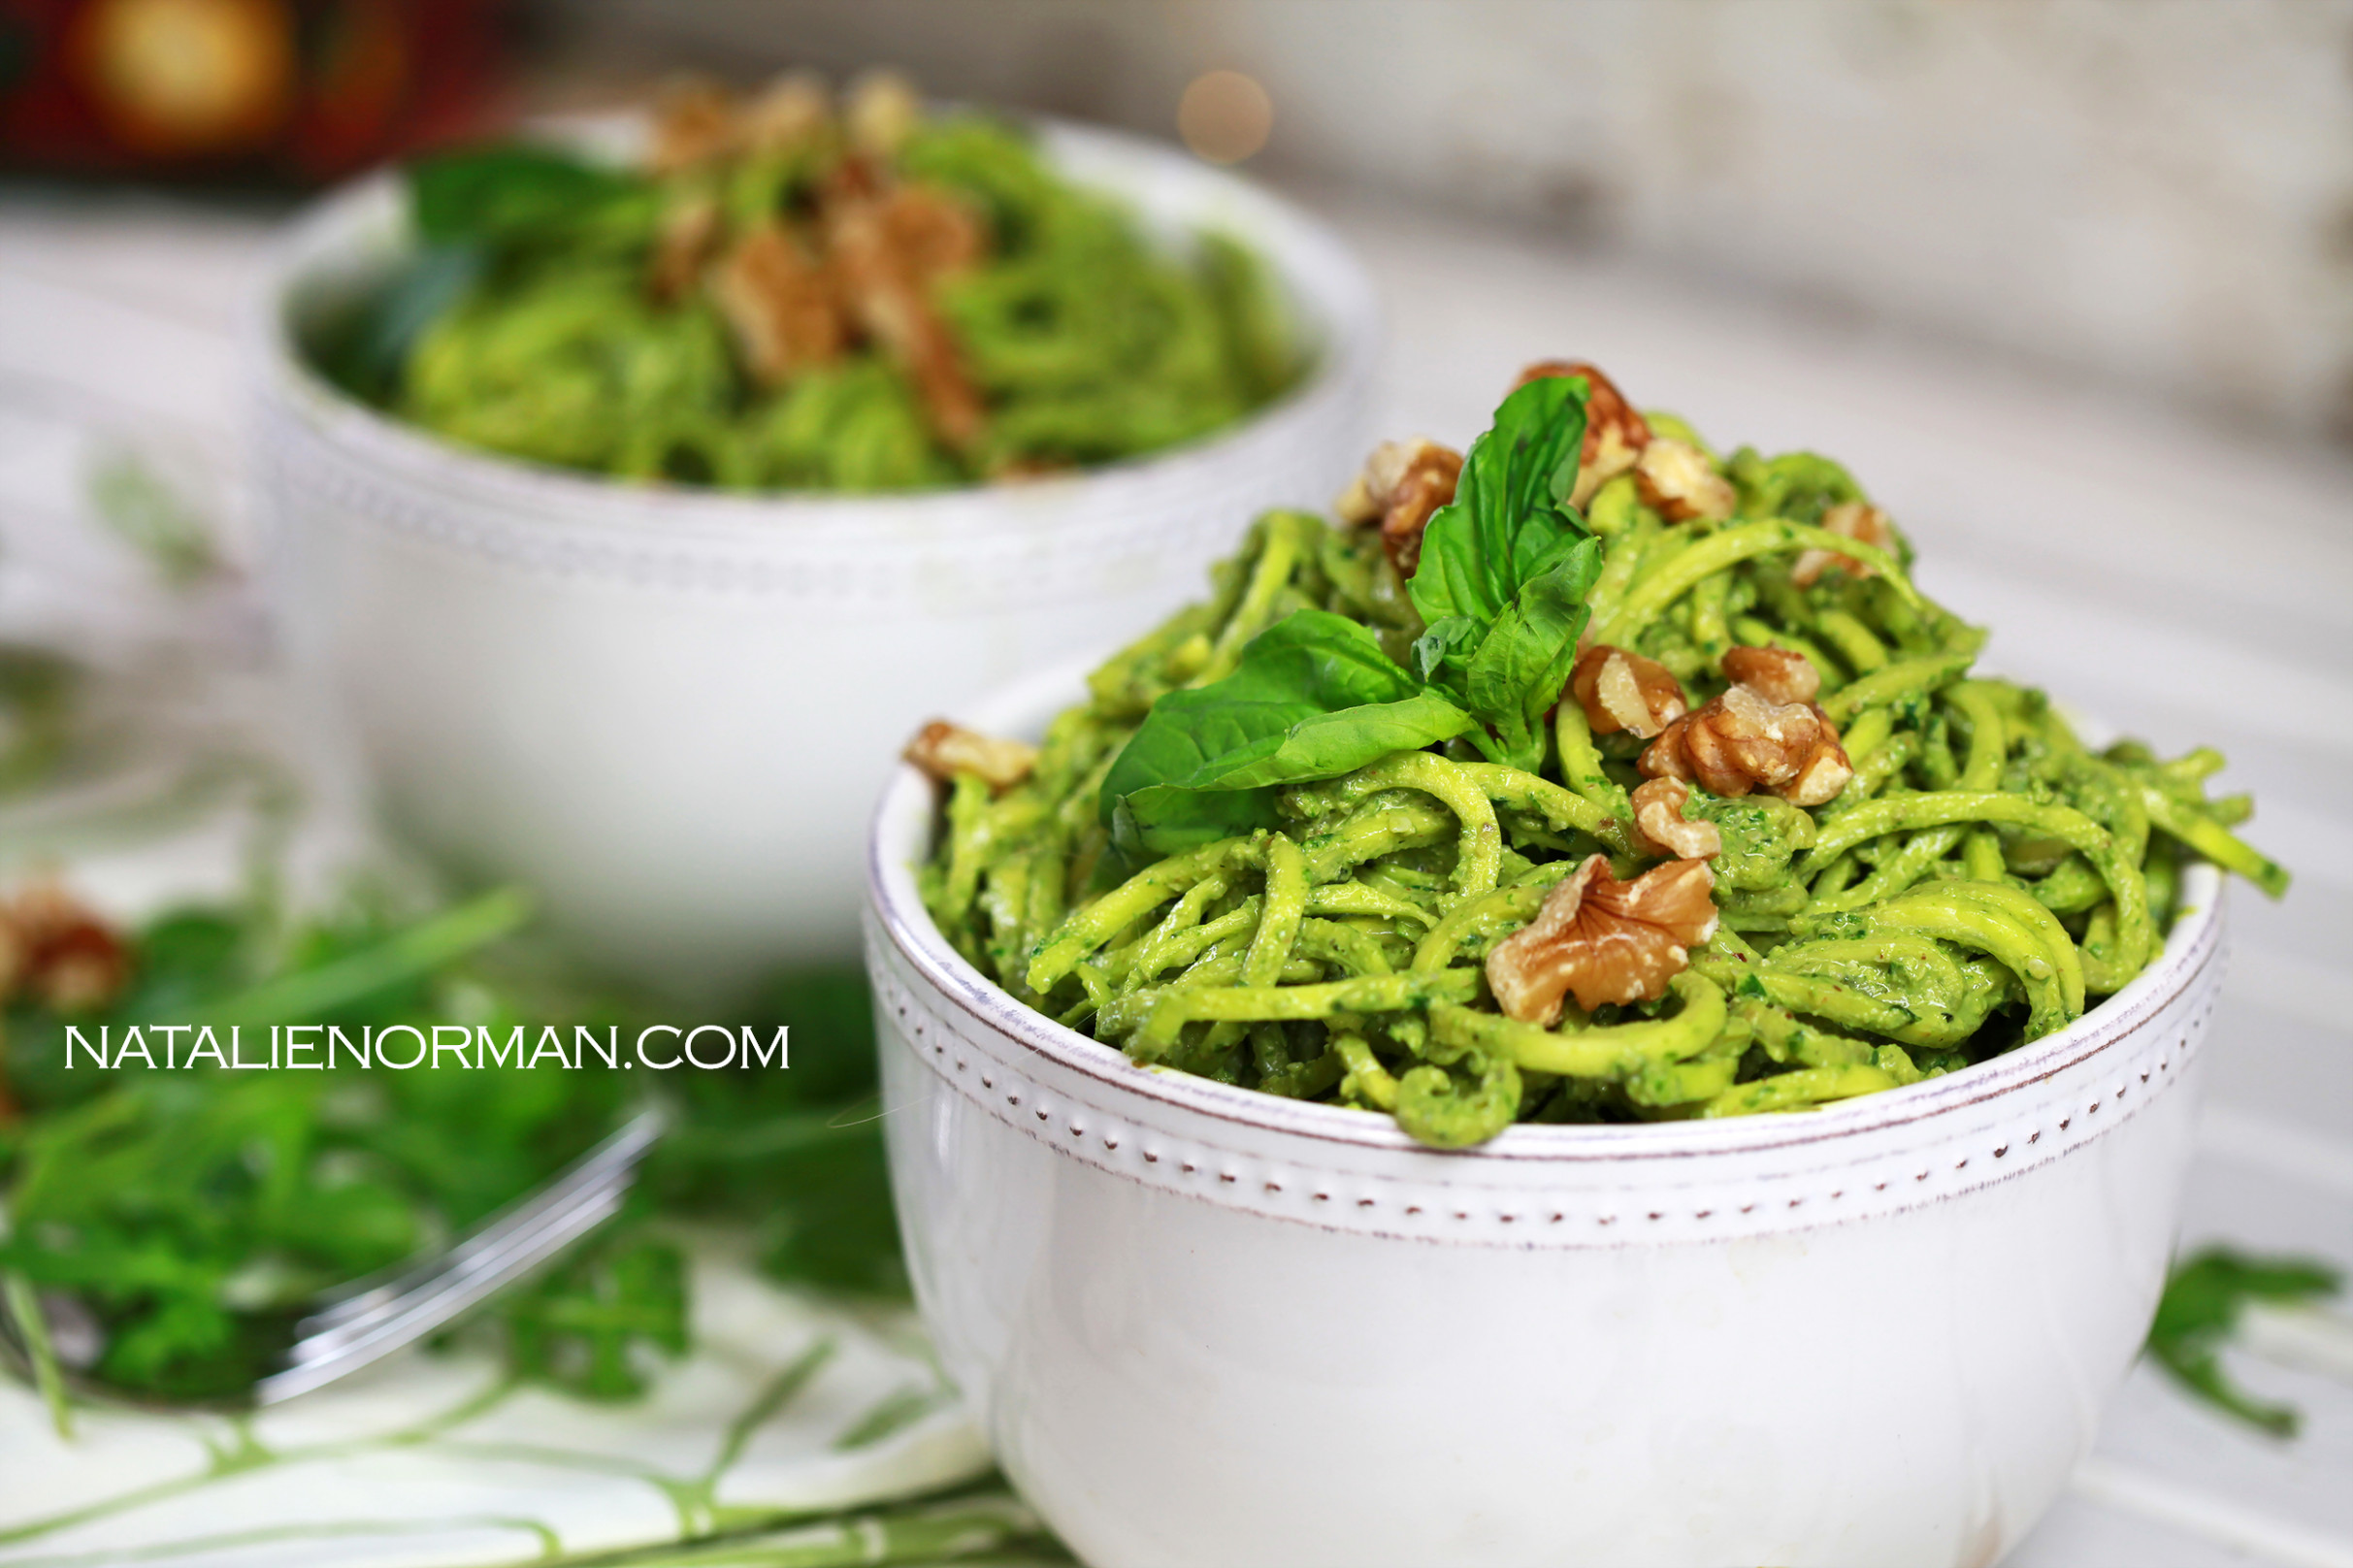 Fast and Easy Raw Vegan Meals: Walnut, Arugula and Basil Pesto - raw food recipes